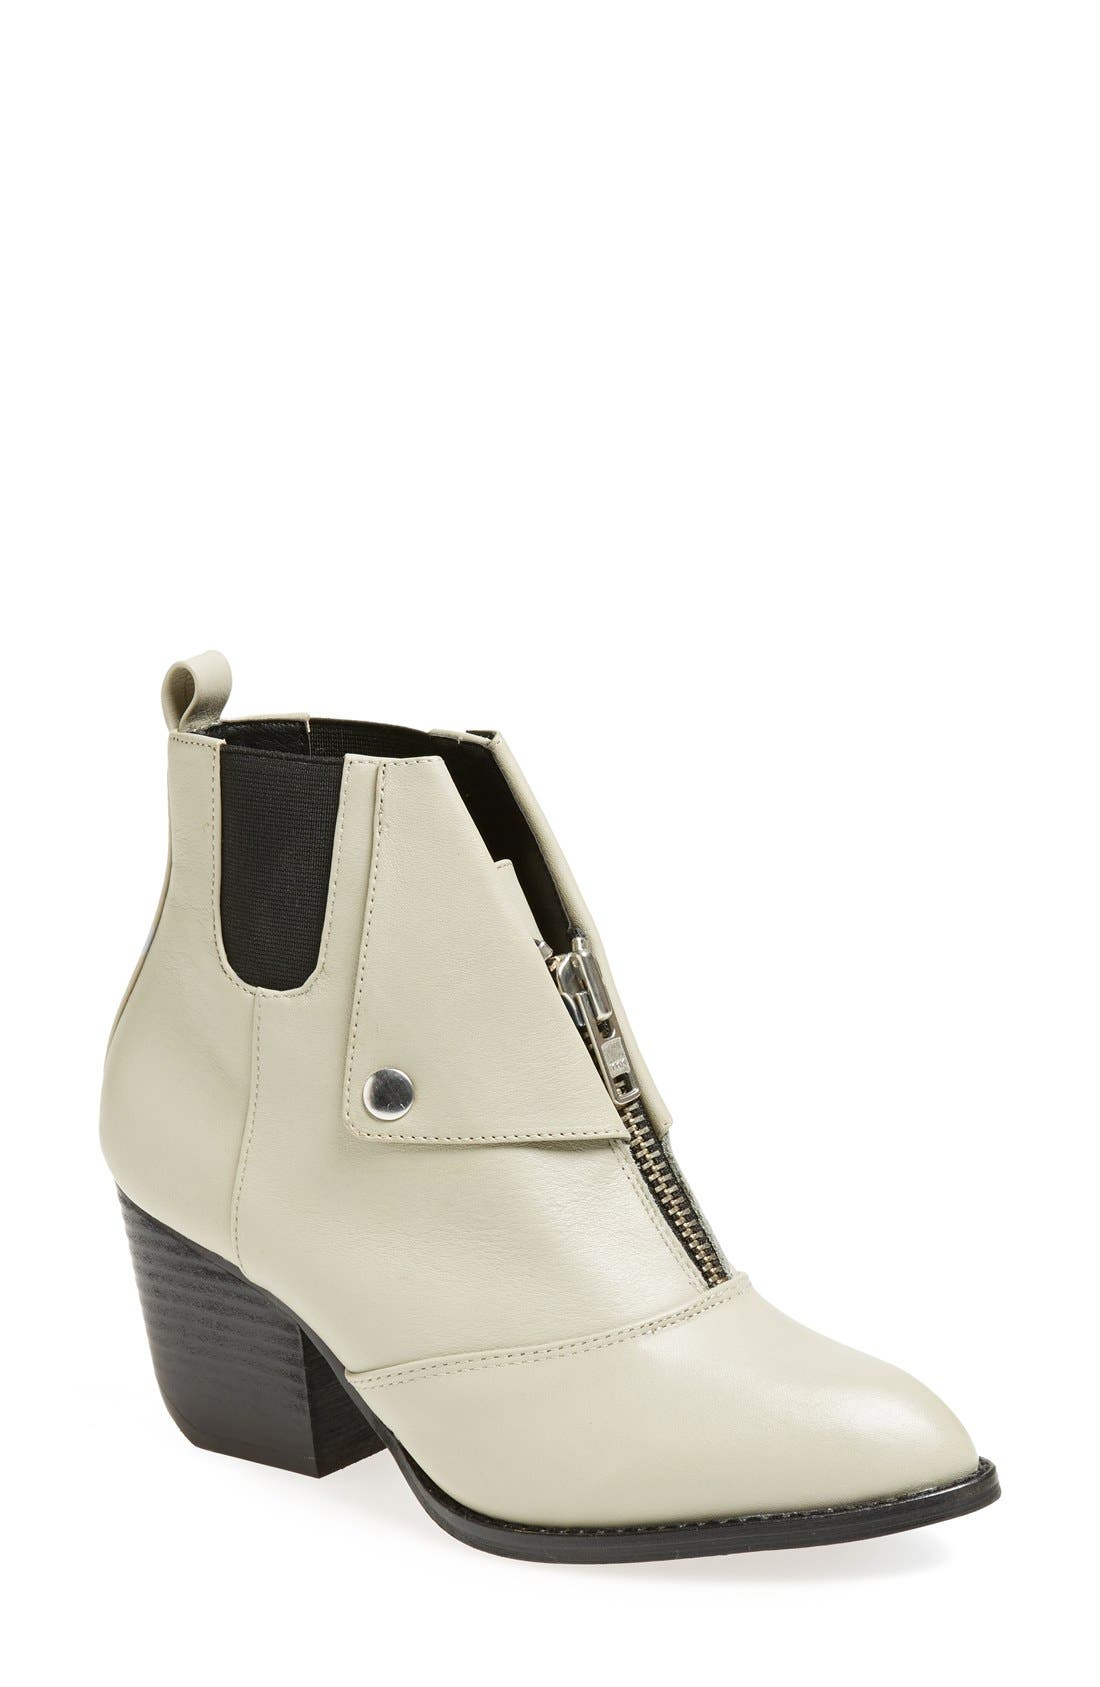 Main Image - Shellys London 'Scalone' Pointy Toe Bootie (Women)